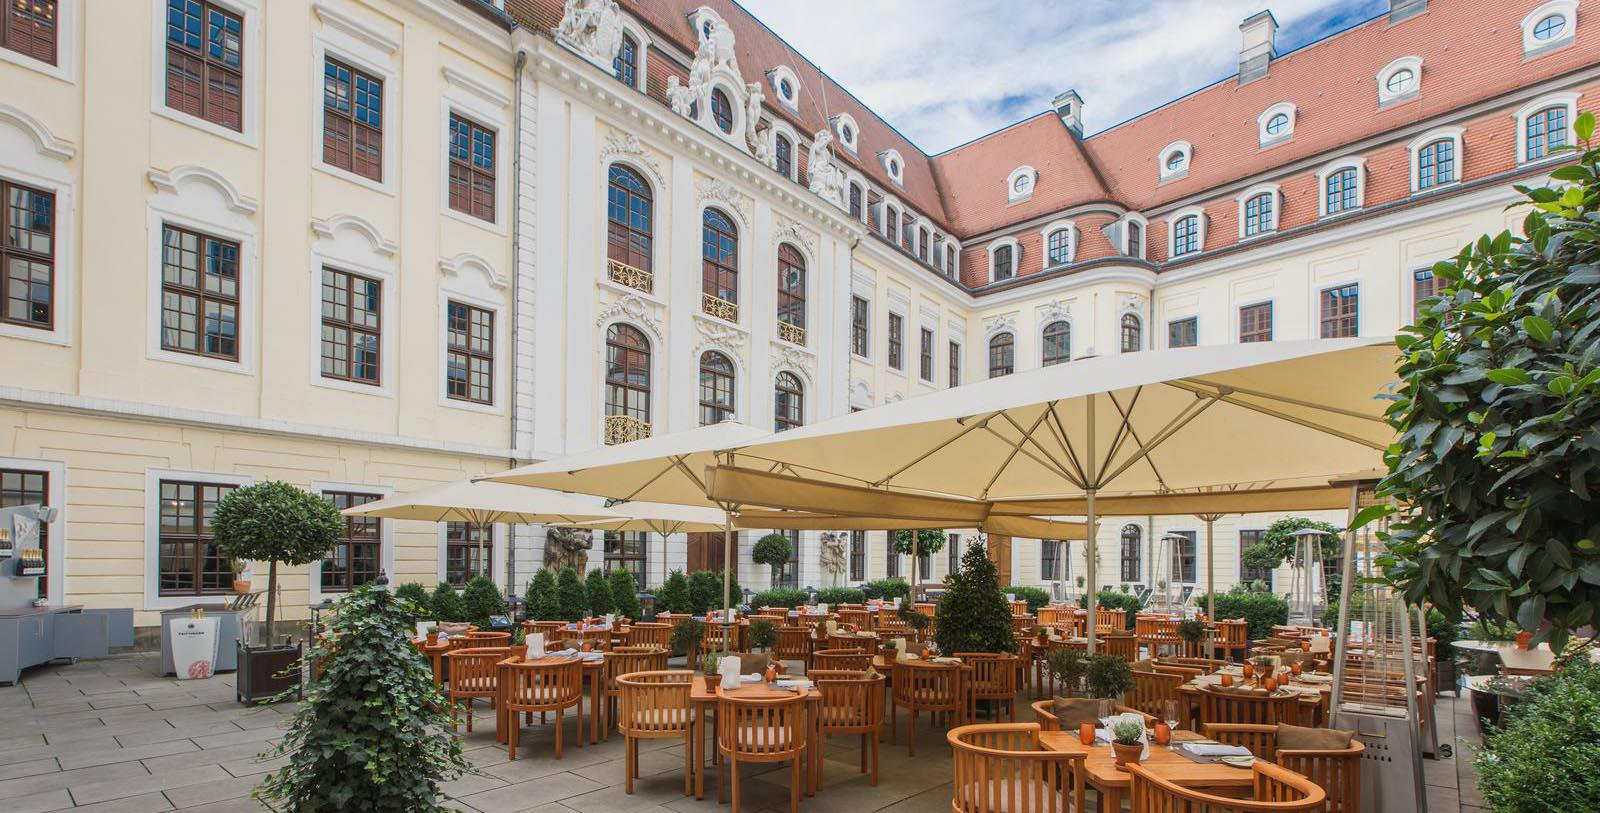 Image of Restaurant Patio, Hotel Taschenbergpalais Kempinski Dresden, Germany, 1700s, Member of Historic Hotels Worldwide, Hot Deals